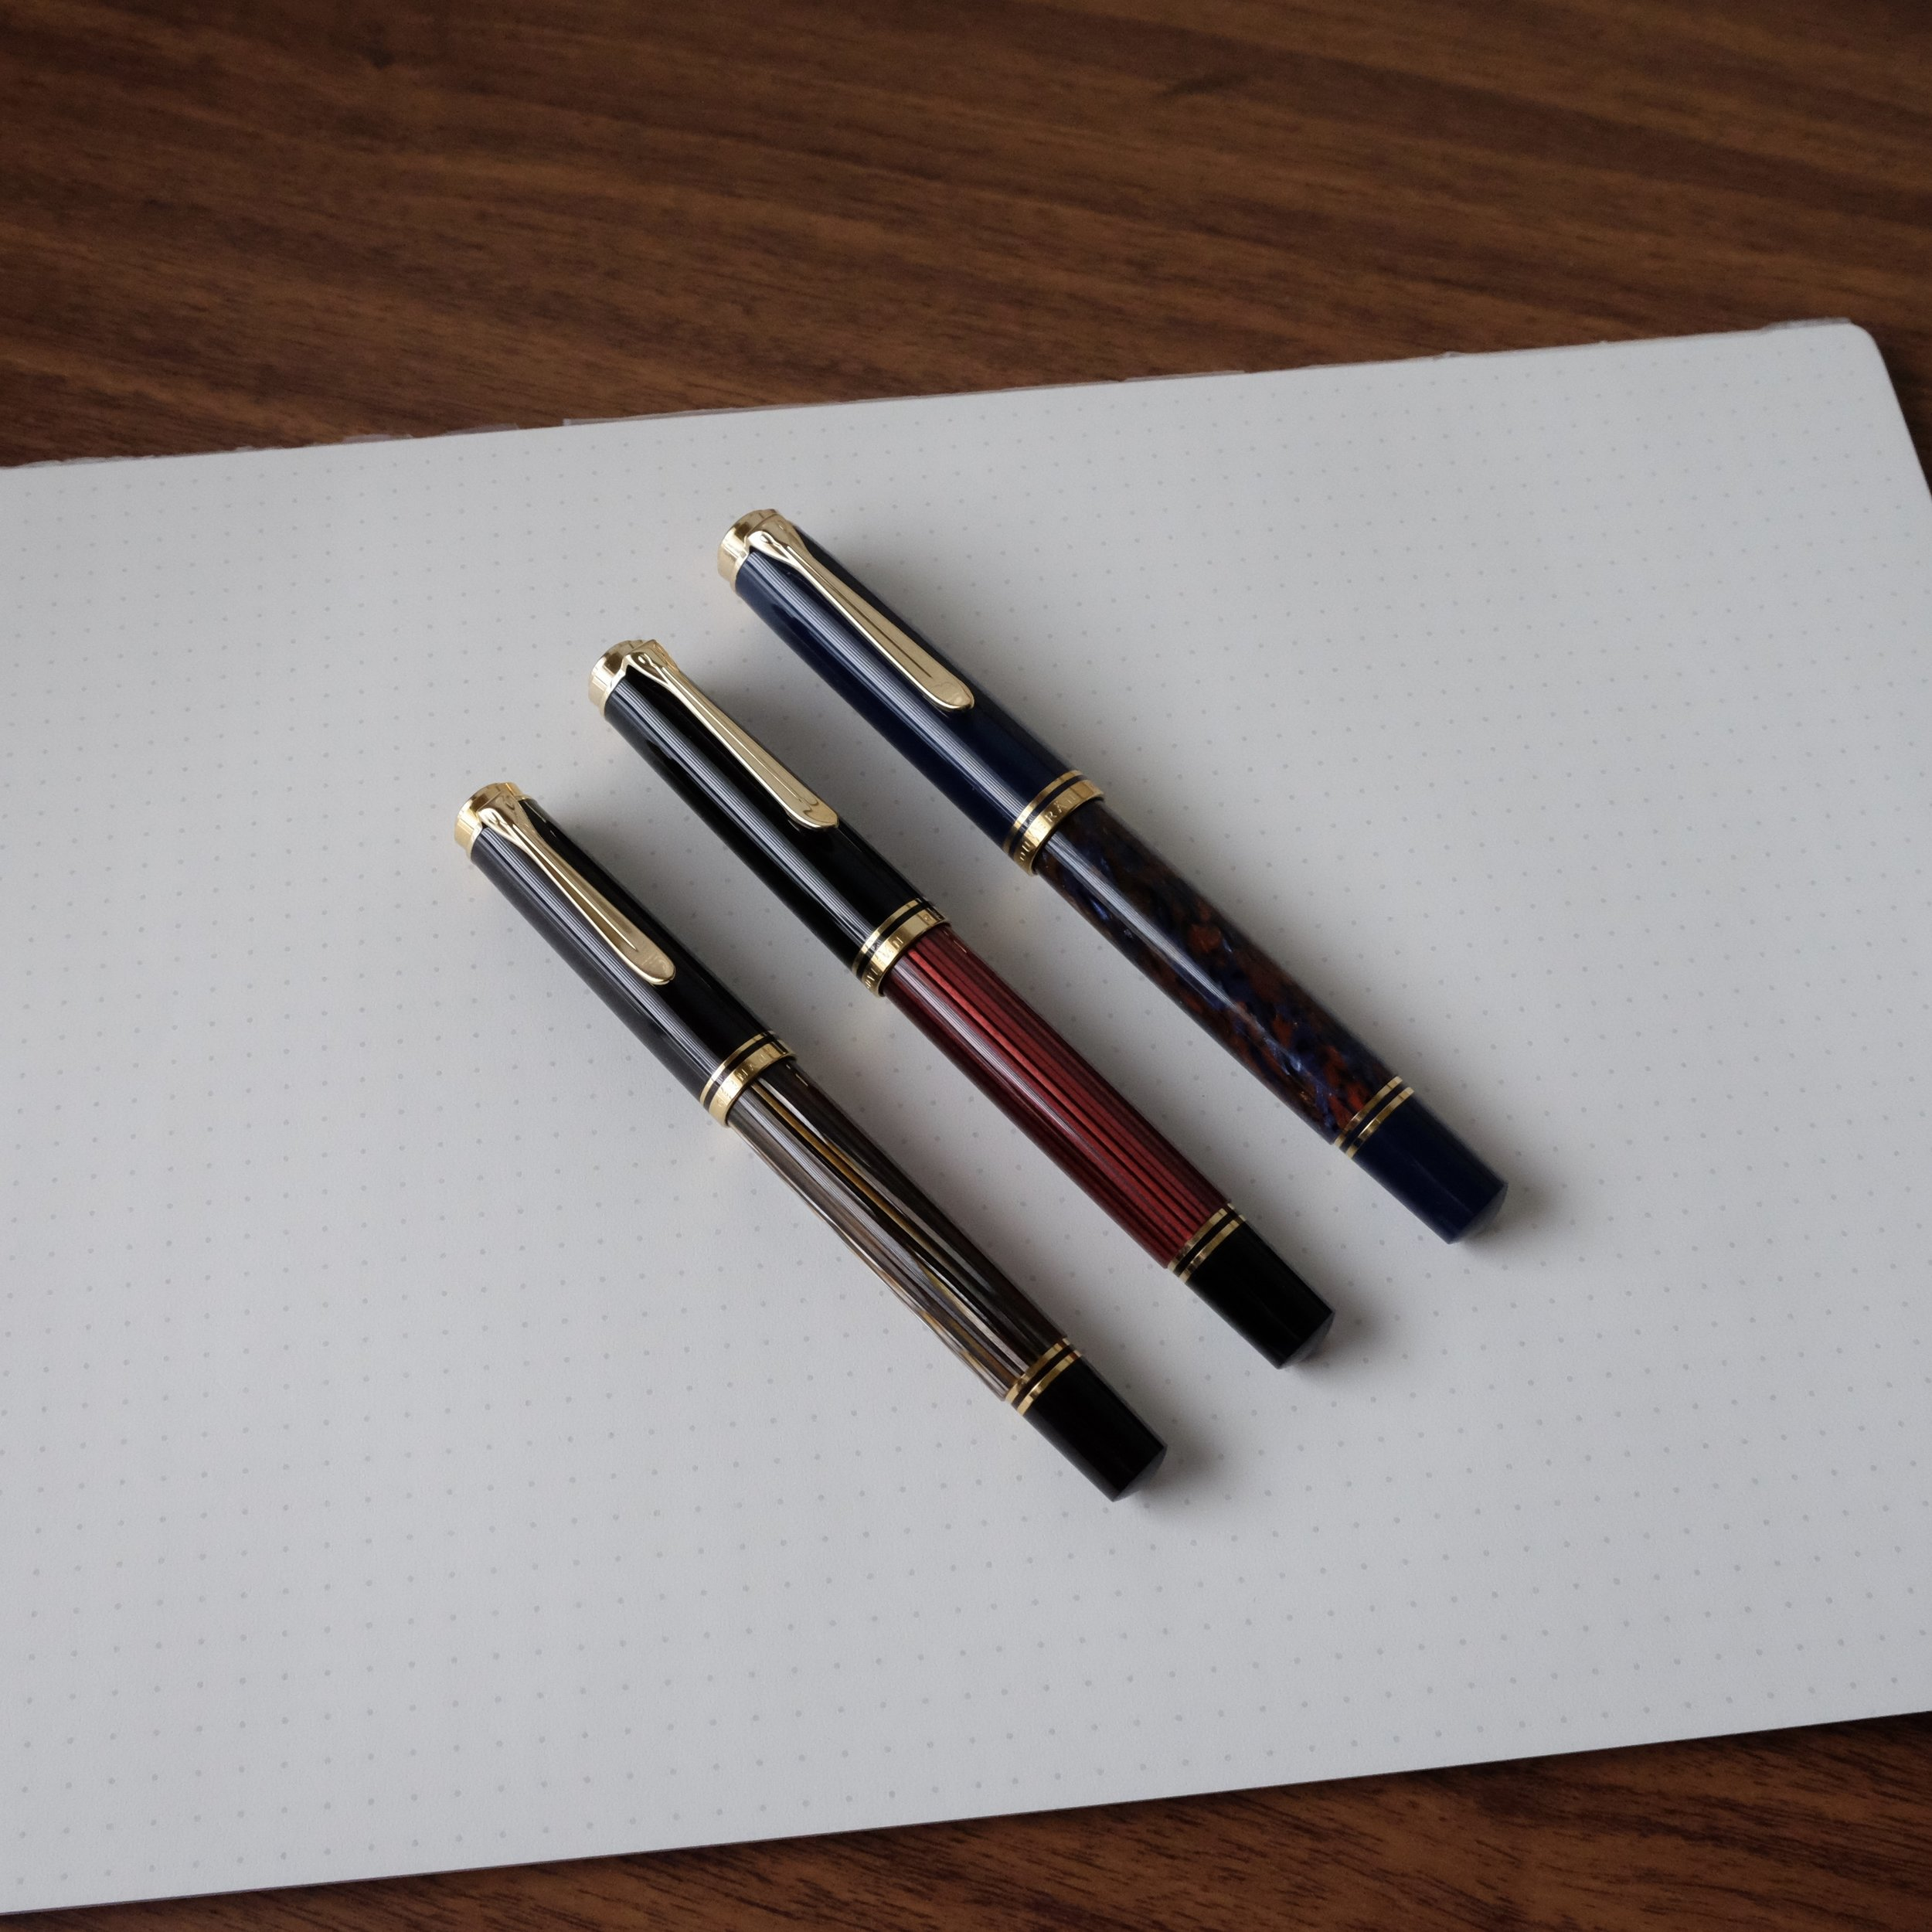 The Pelikan Souveran M400 (left) compared to the M600 (center) and the M800 (right)